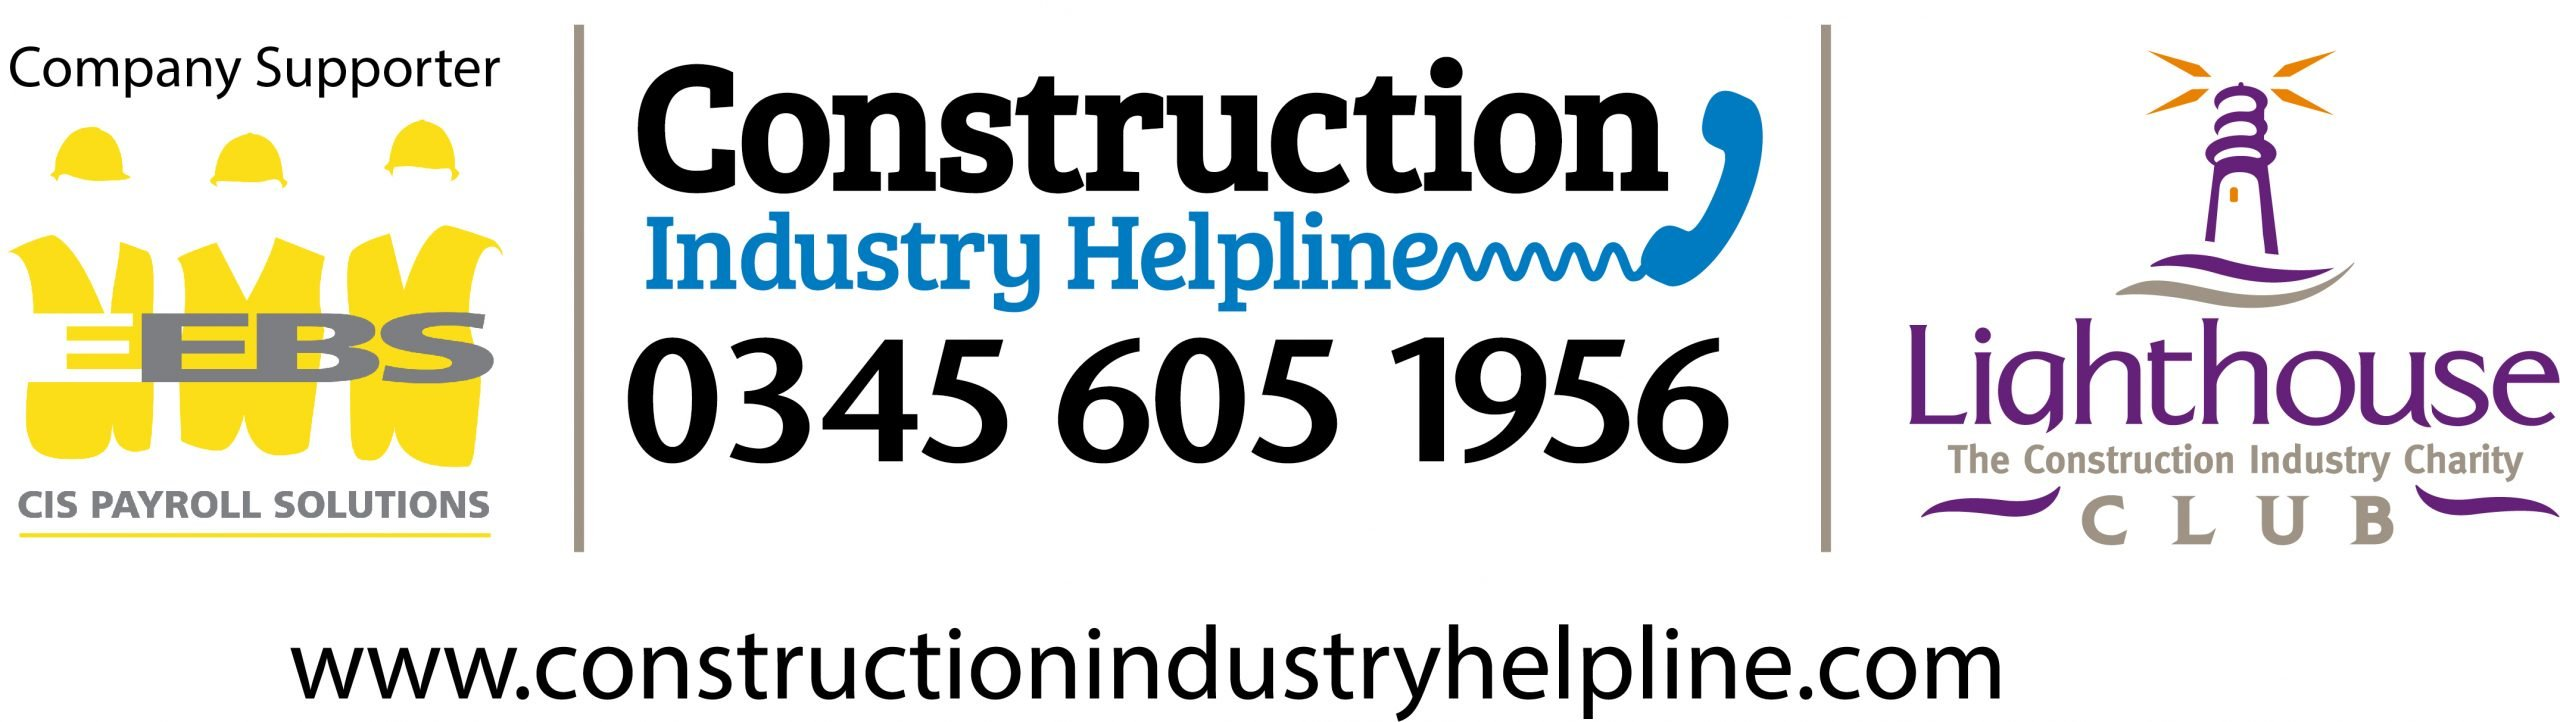 Support The Lighthouse Construction Industry Charity